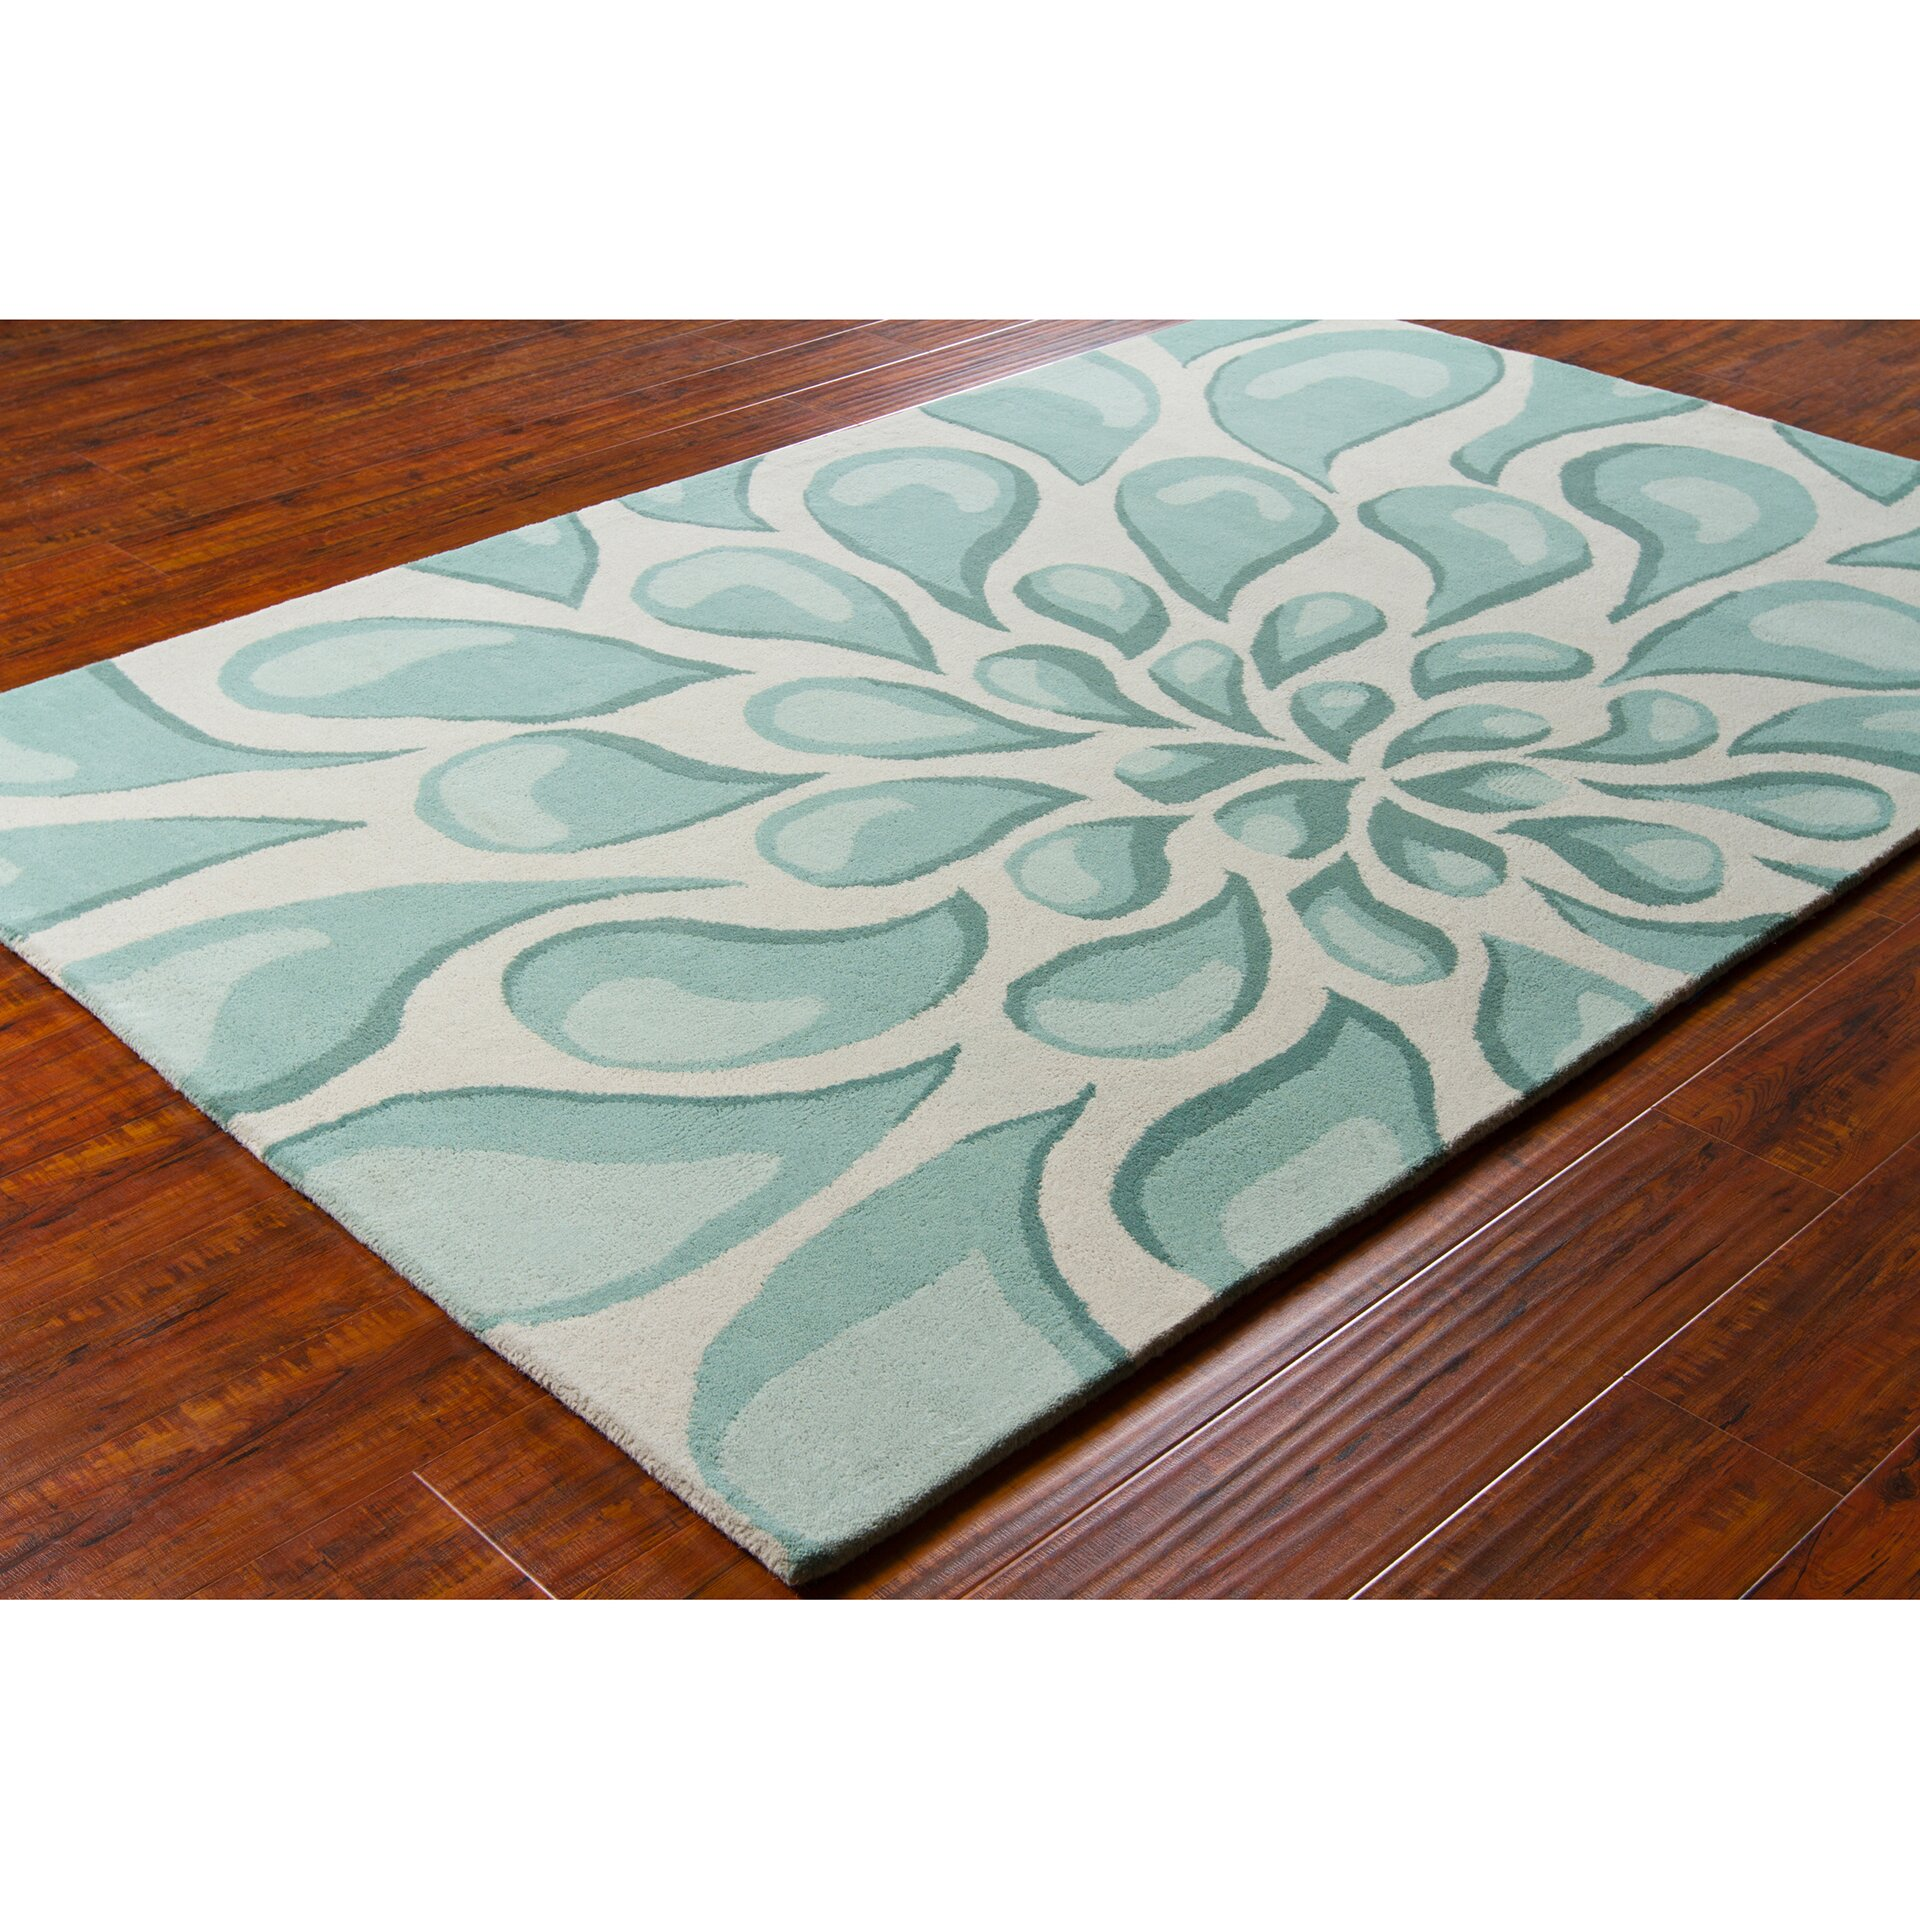 Chandra Stella Patterned Contemporary Wool Beige/Aqua Area